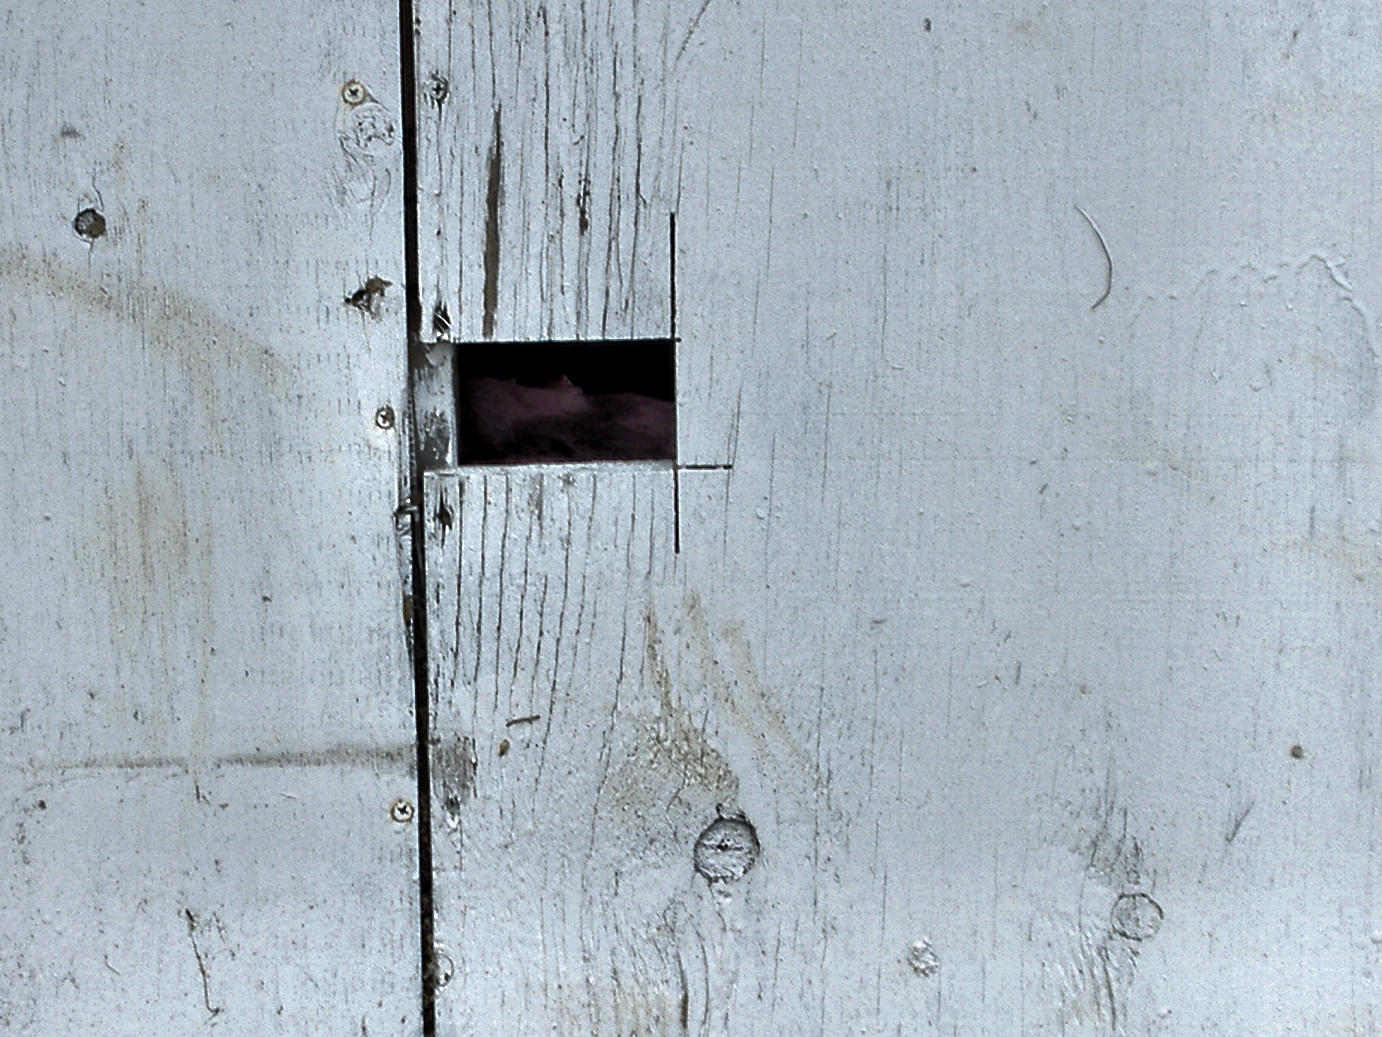 Structure_wall_wood 01 by Aimelle-Stock